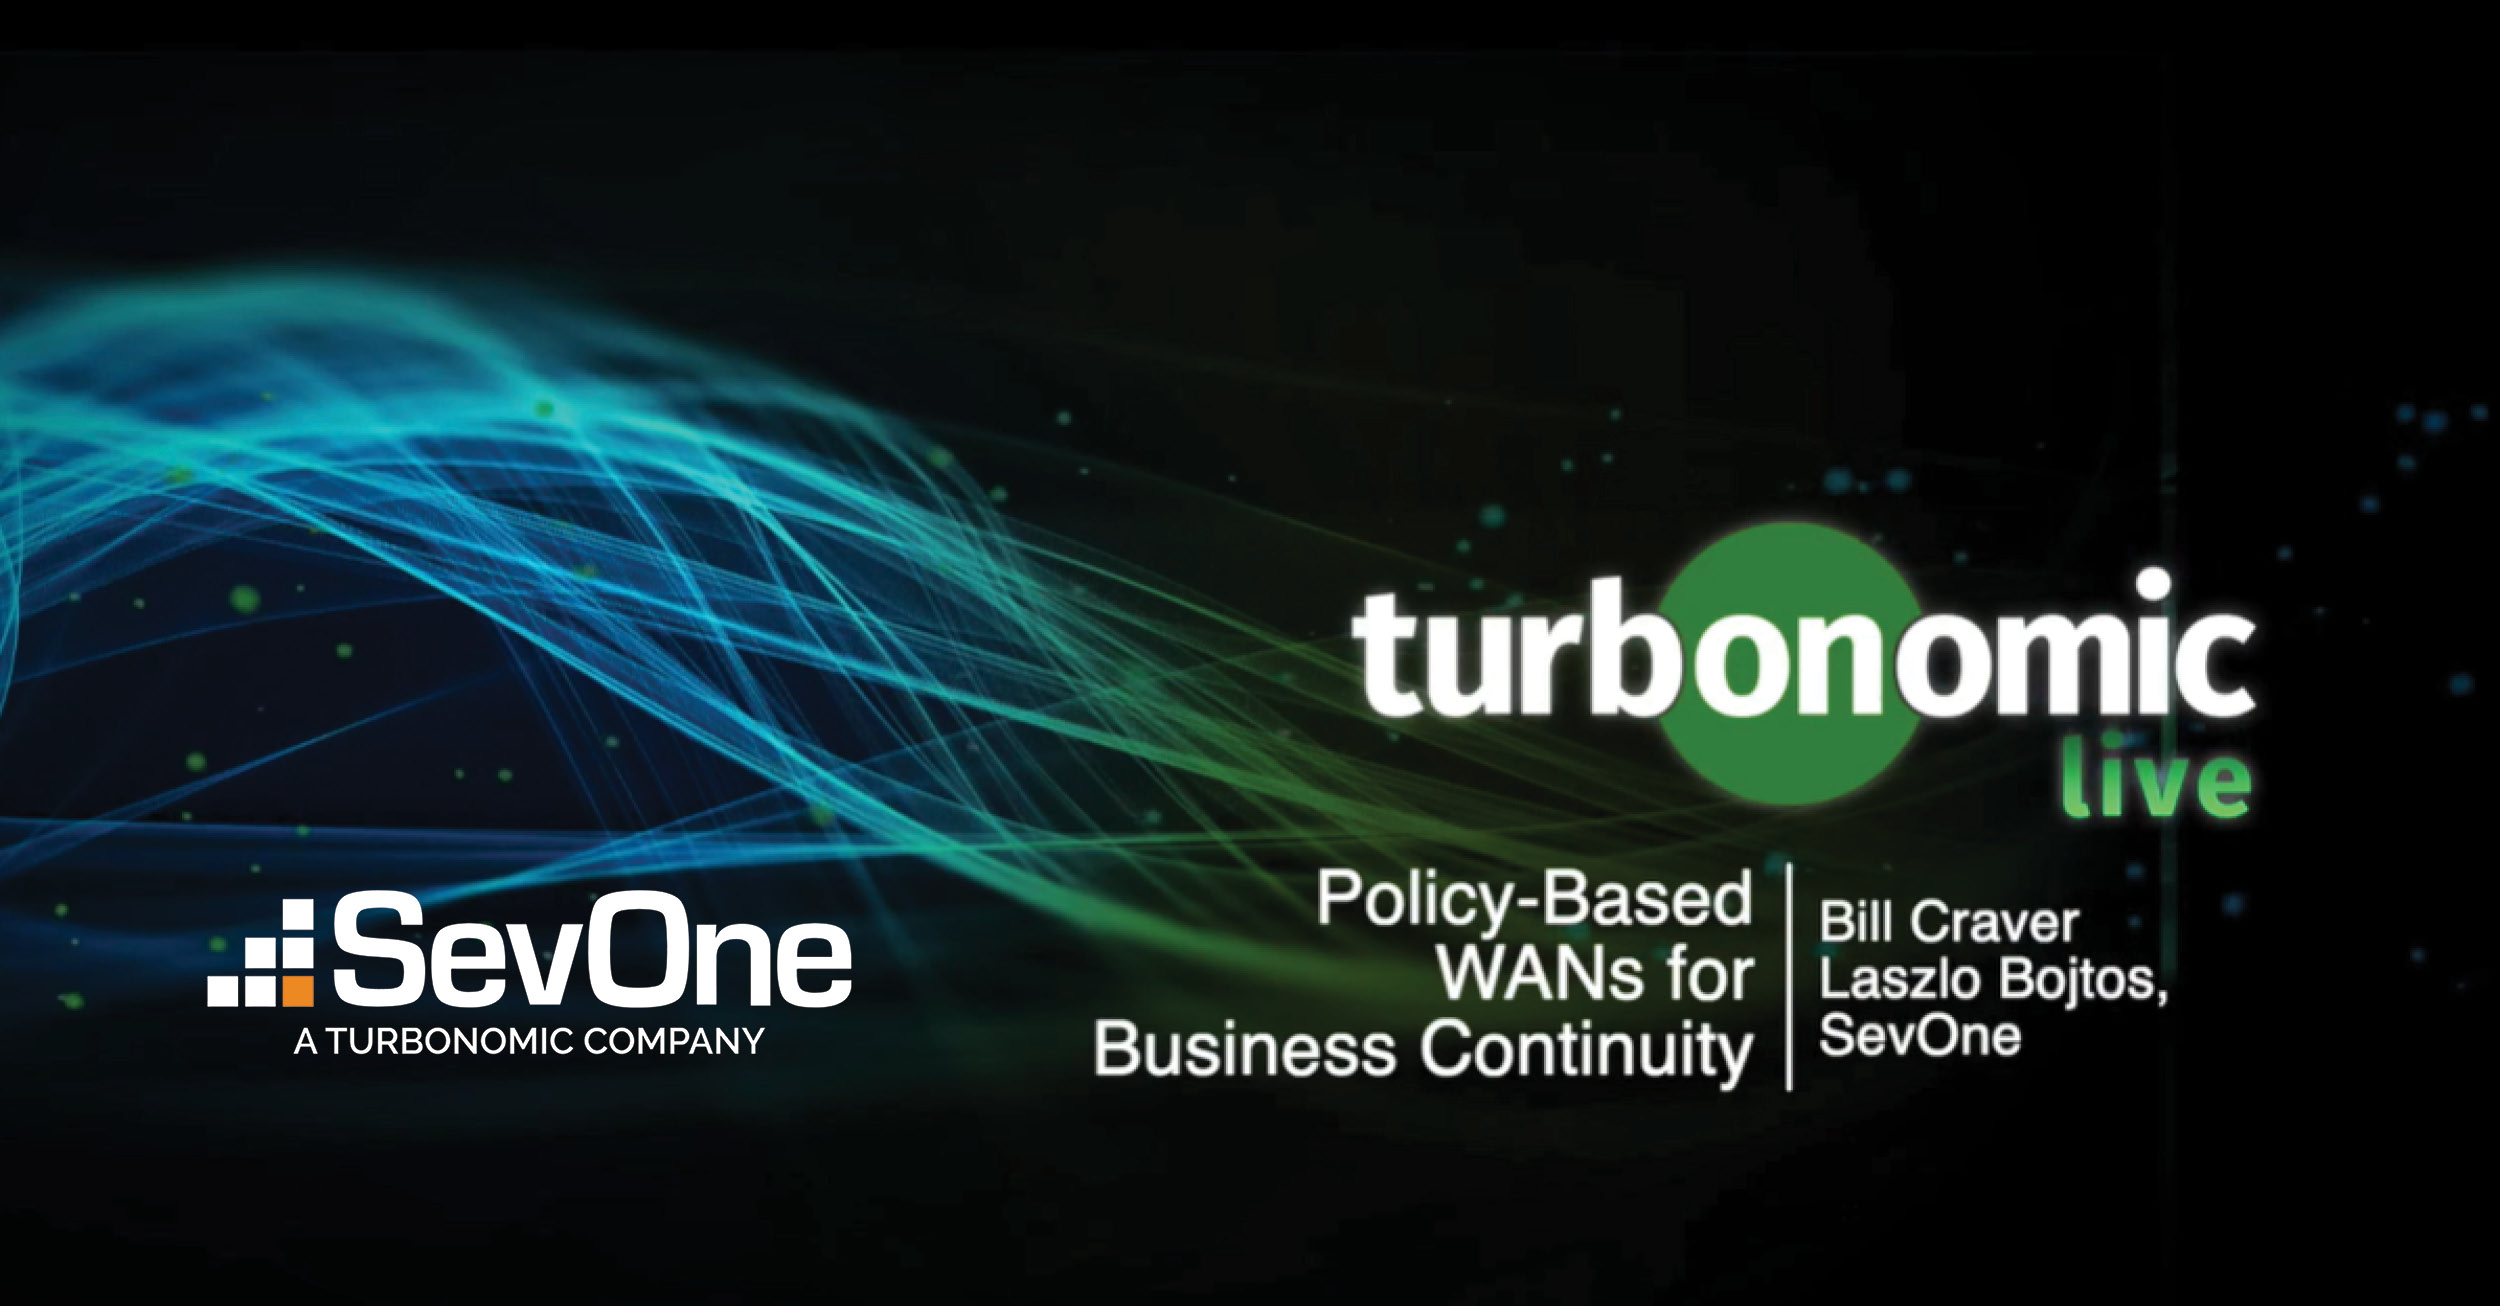 Policy-Based SD-WANs for Business Continuity thumbnail